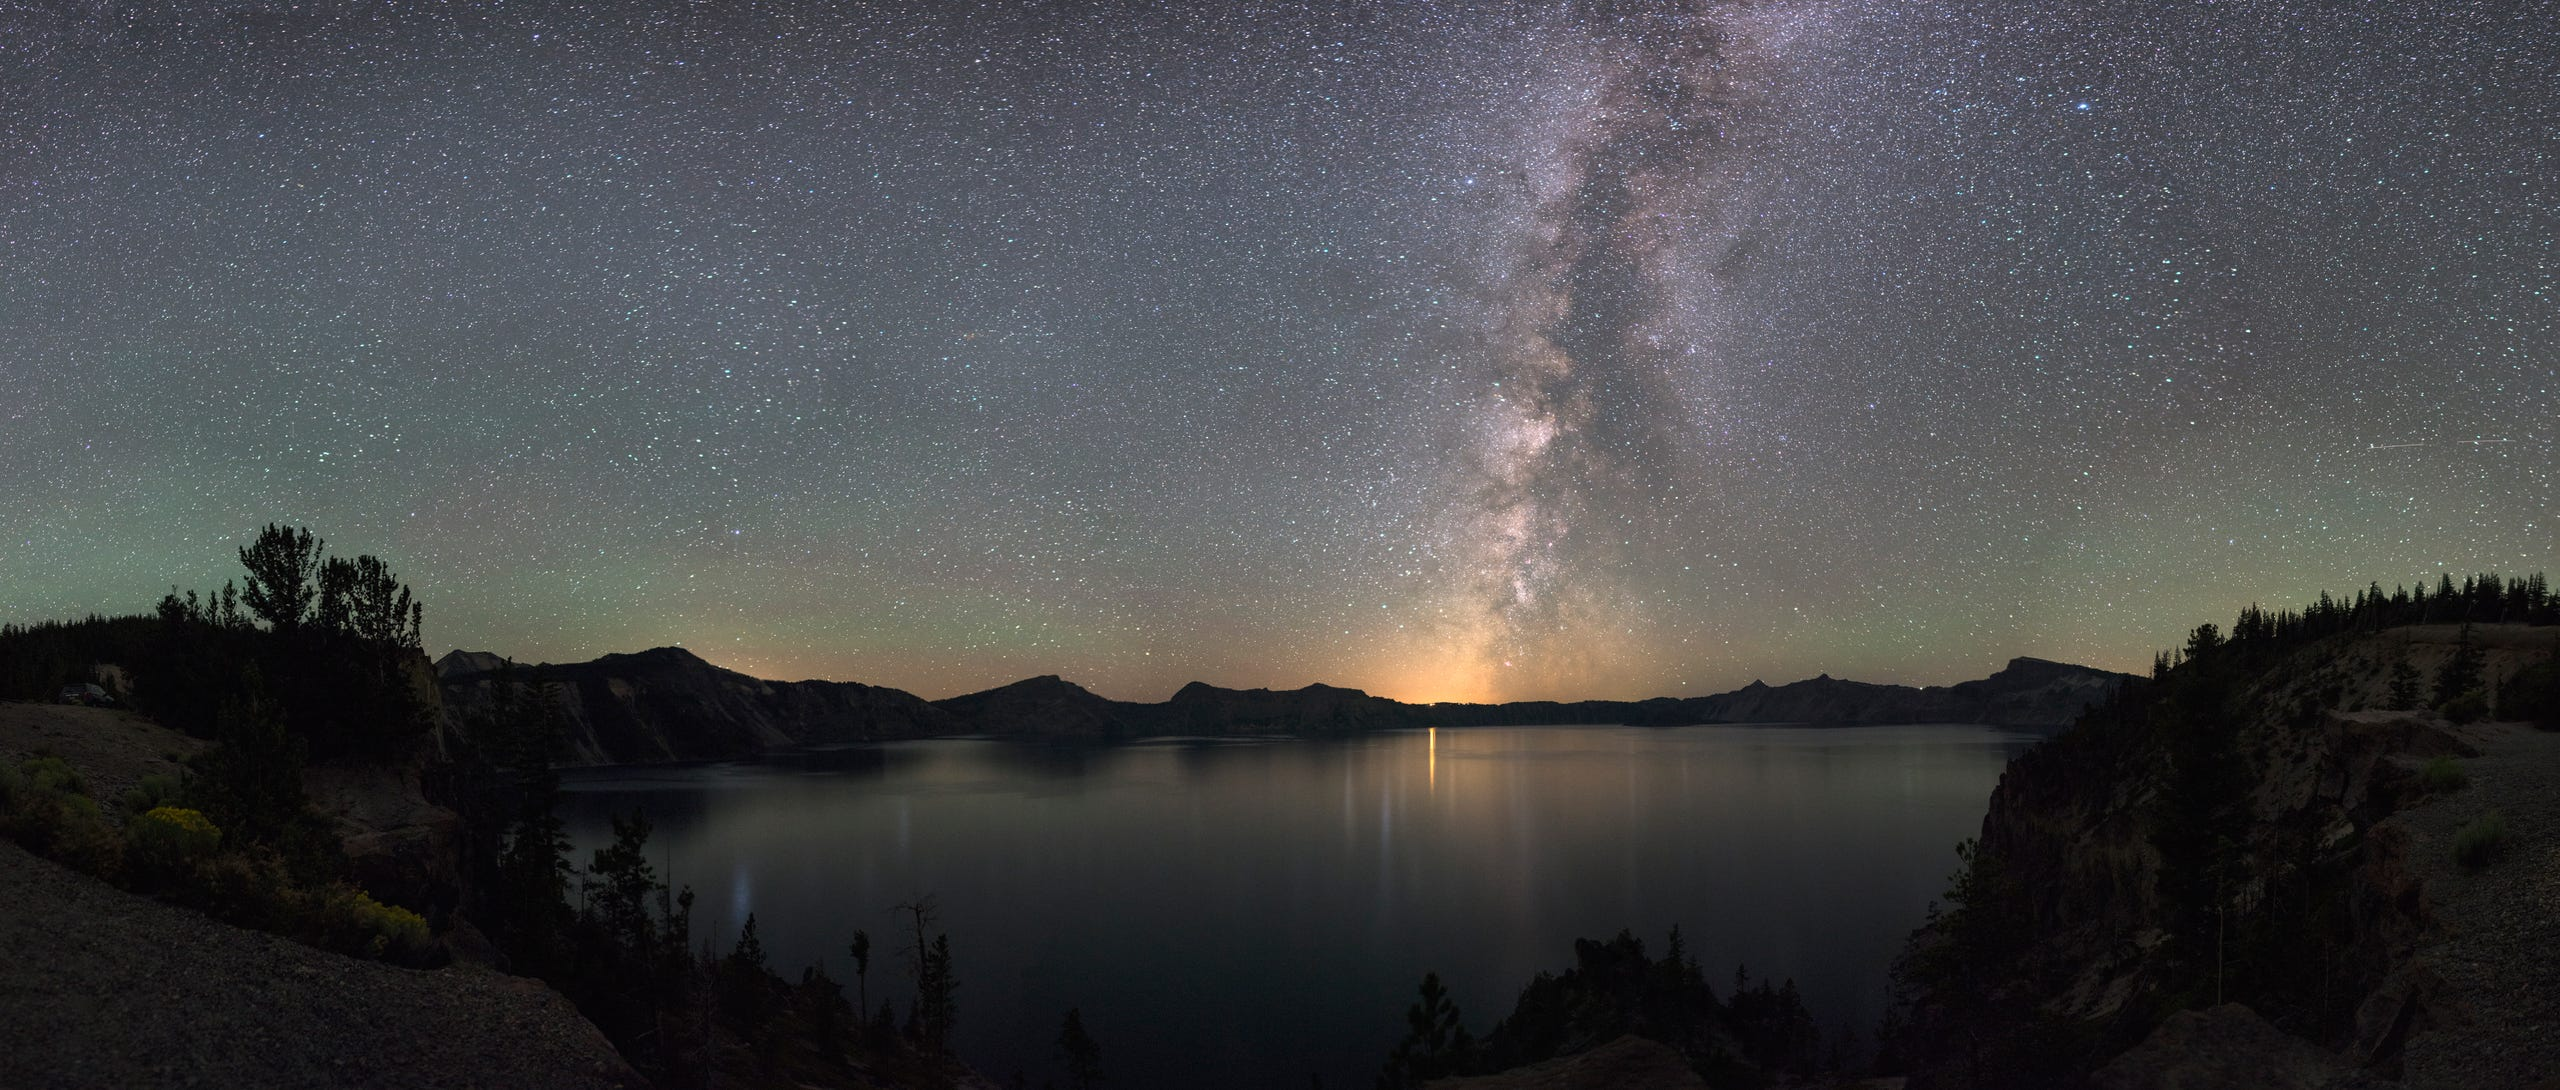 <strong>Crater Lake, Oregon:</strong> The combination of dry weather and high elevation makes Oregon's Crater Lake National Park, Oregon ideal for stargazing.